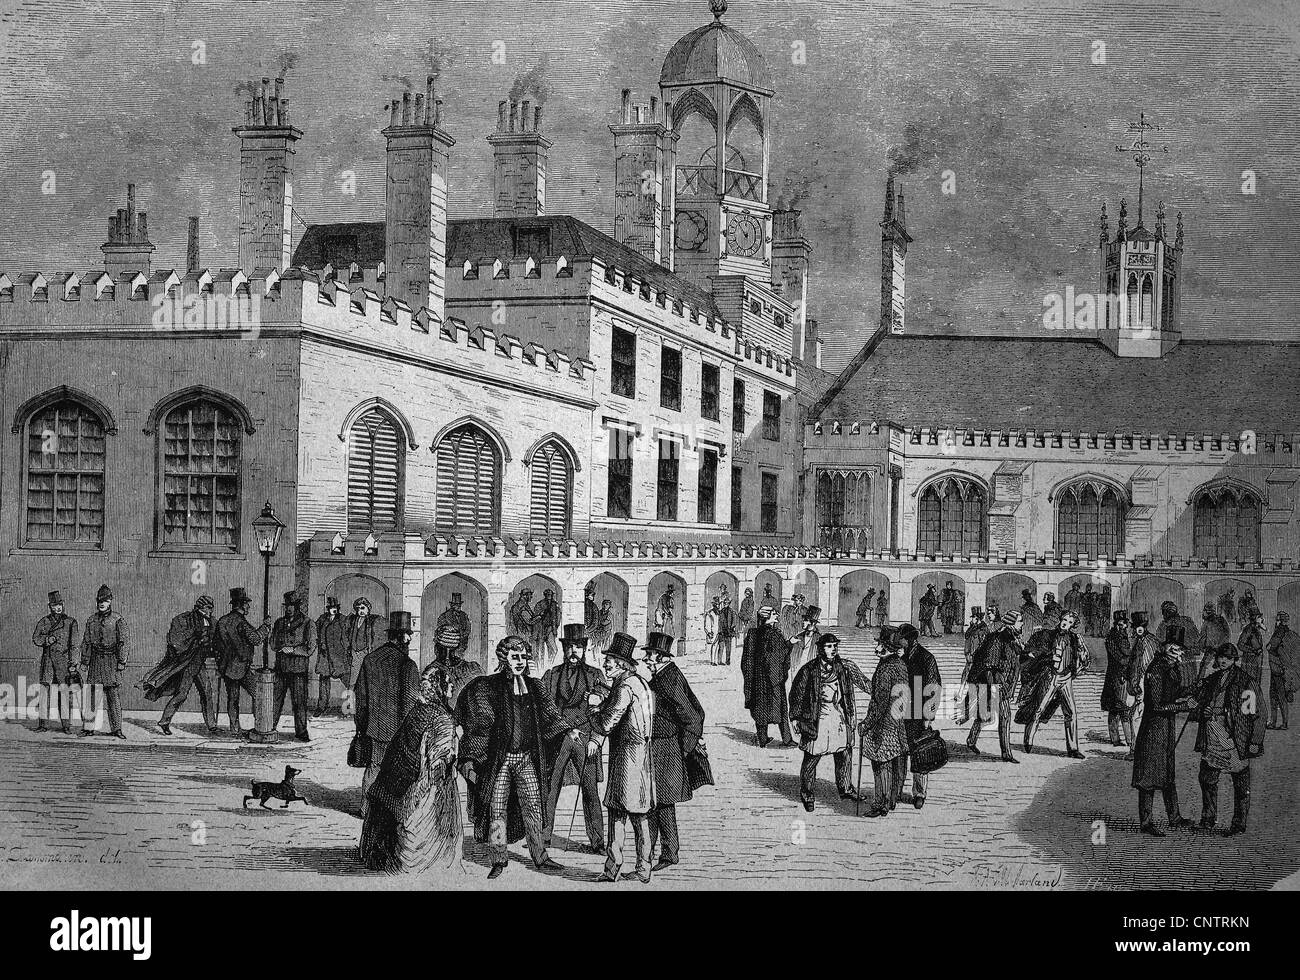 Royal Courts of Justice, London, England, United Kingdom, historical woodcut, circa 1870 - Stock Image